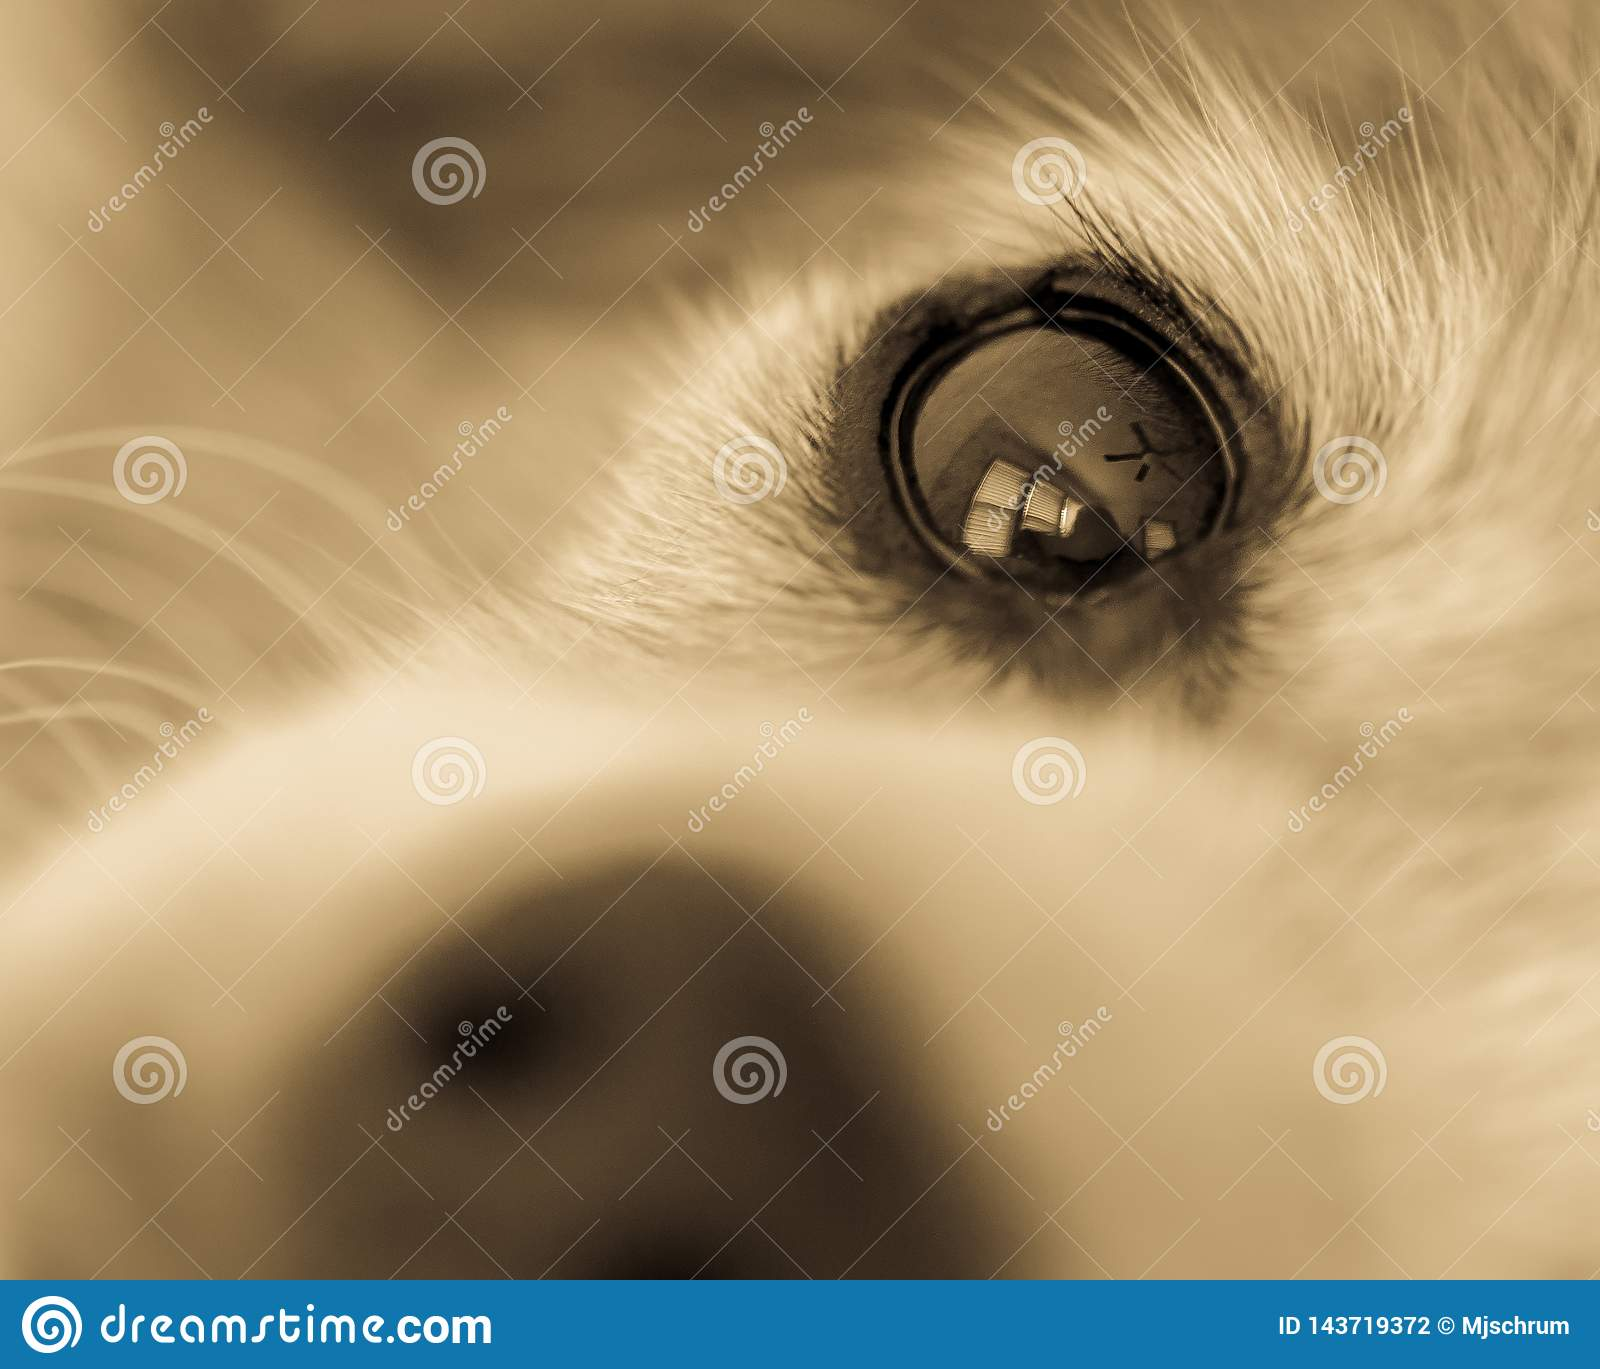 Monochrome close-up of dog`s eye viewed from the nose